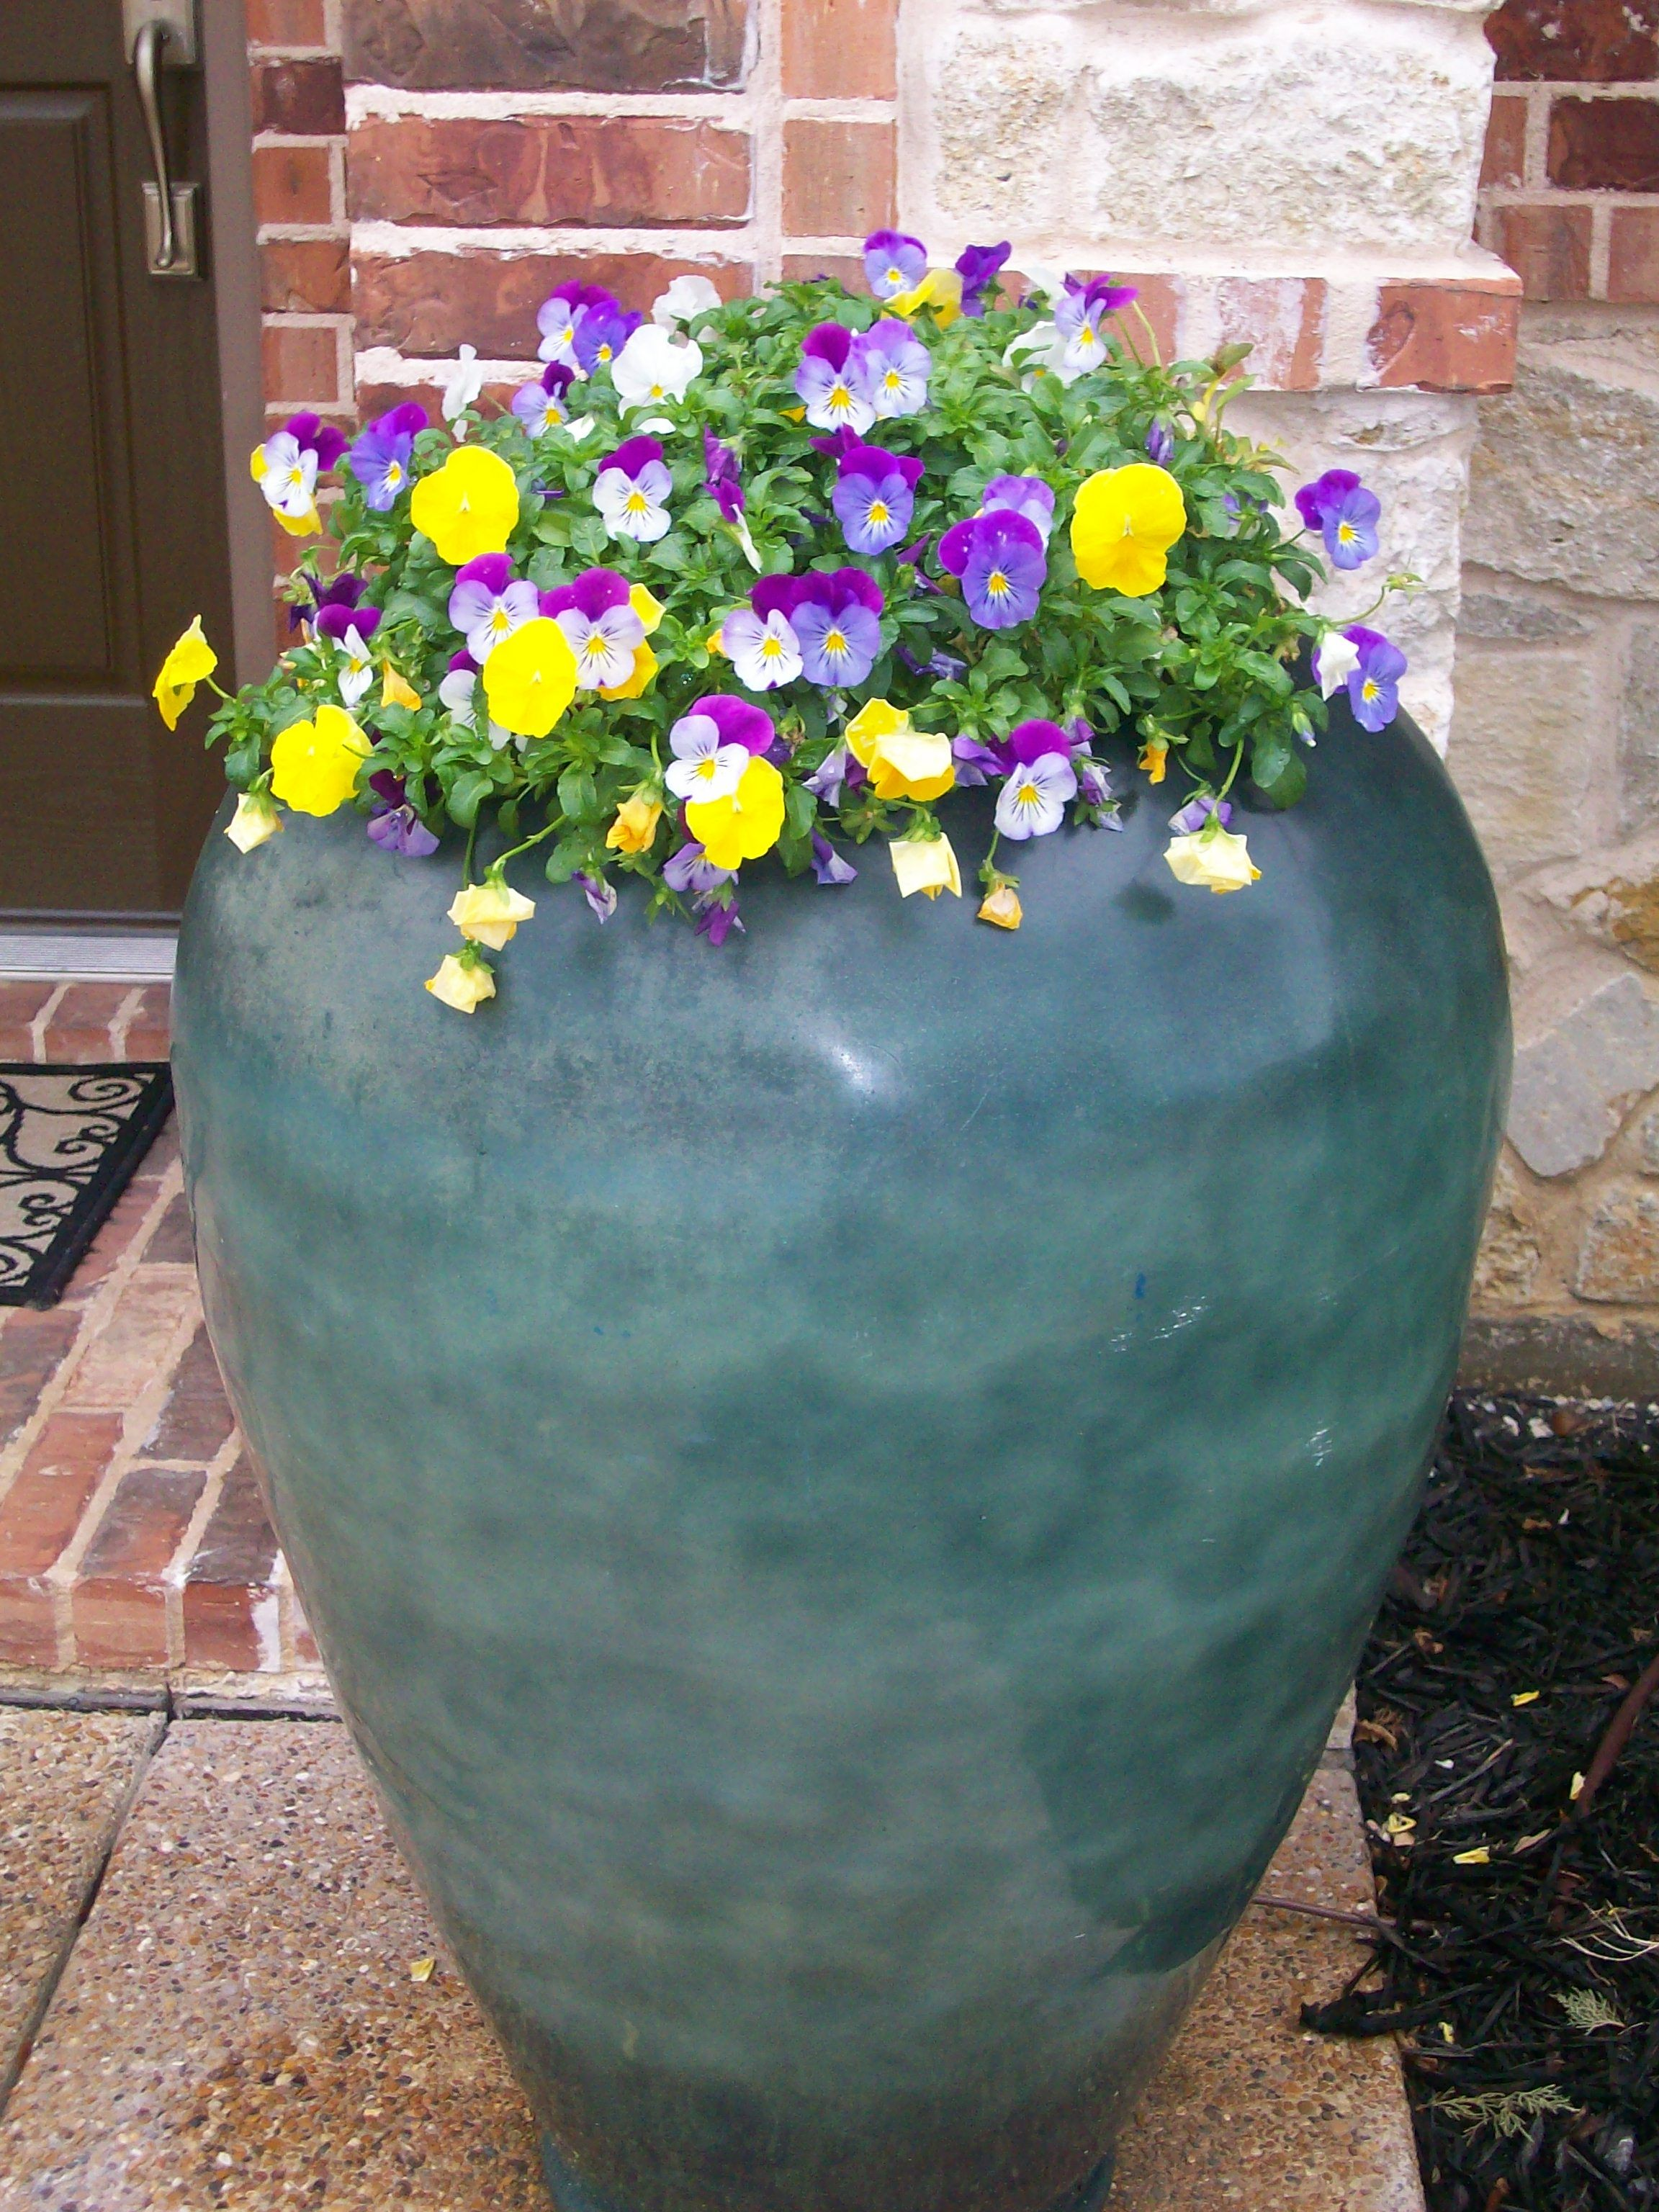 Big Flower Planters Our Flower Pots Gardens Water Features Fire Pits